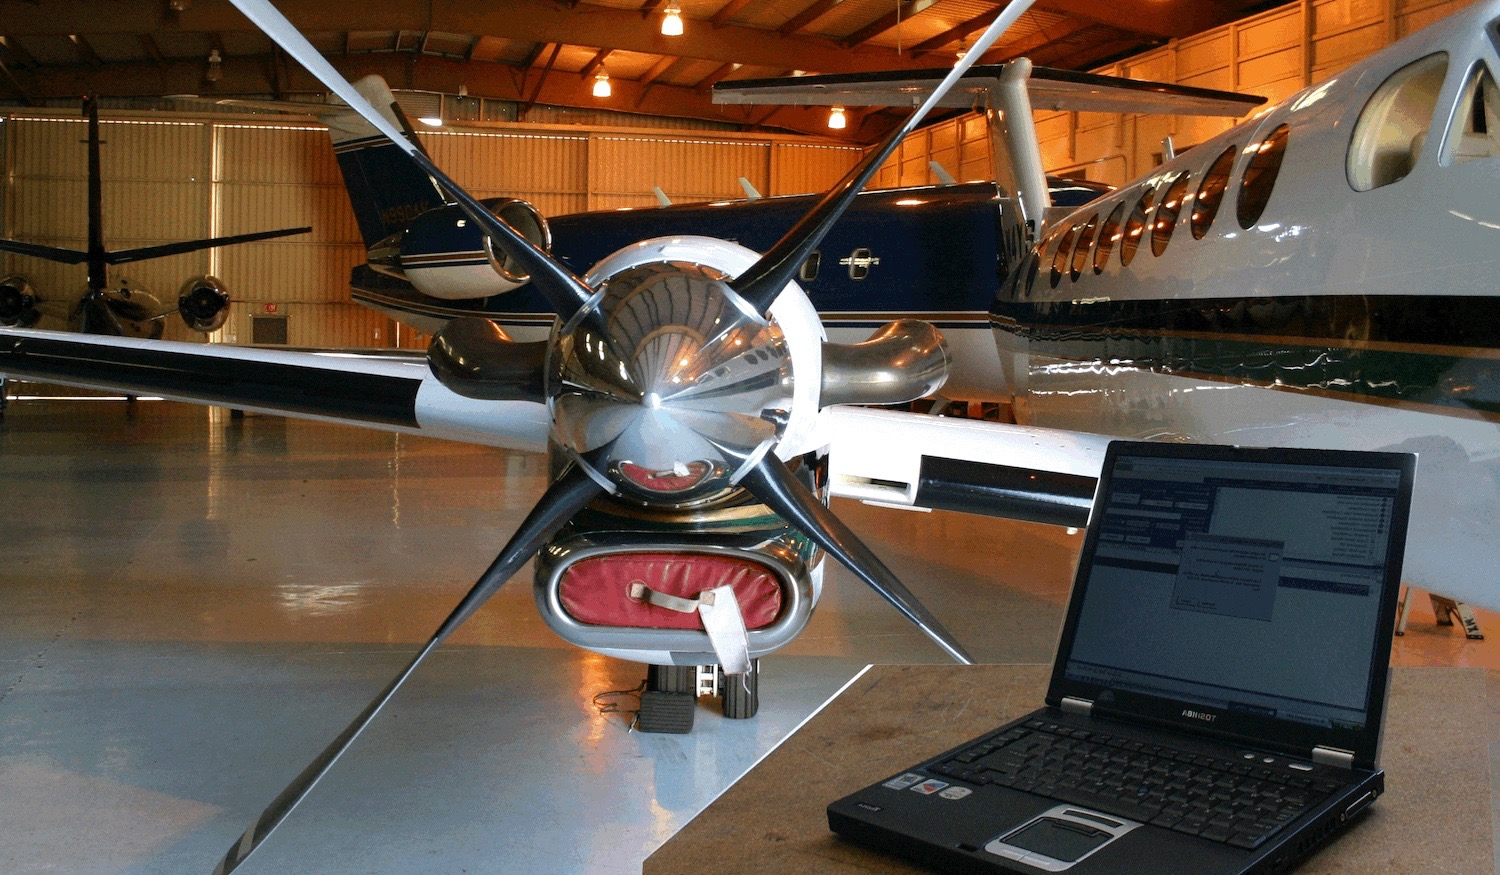 laptop on wooden desk in hanger with airplane in background